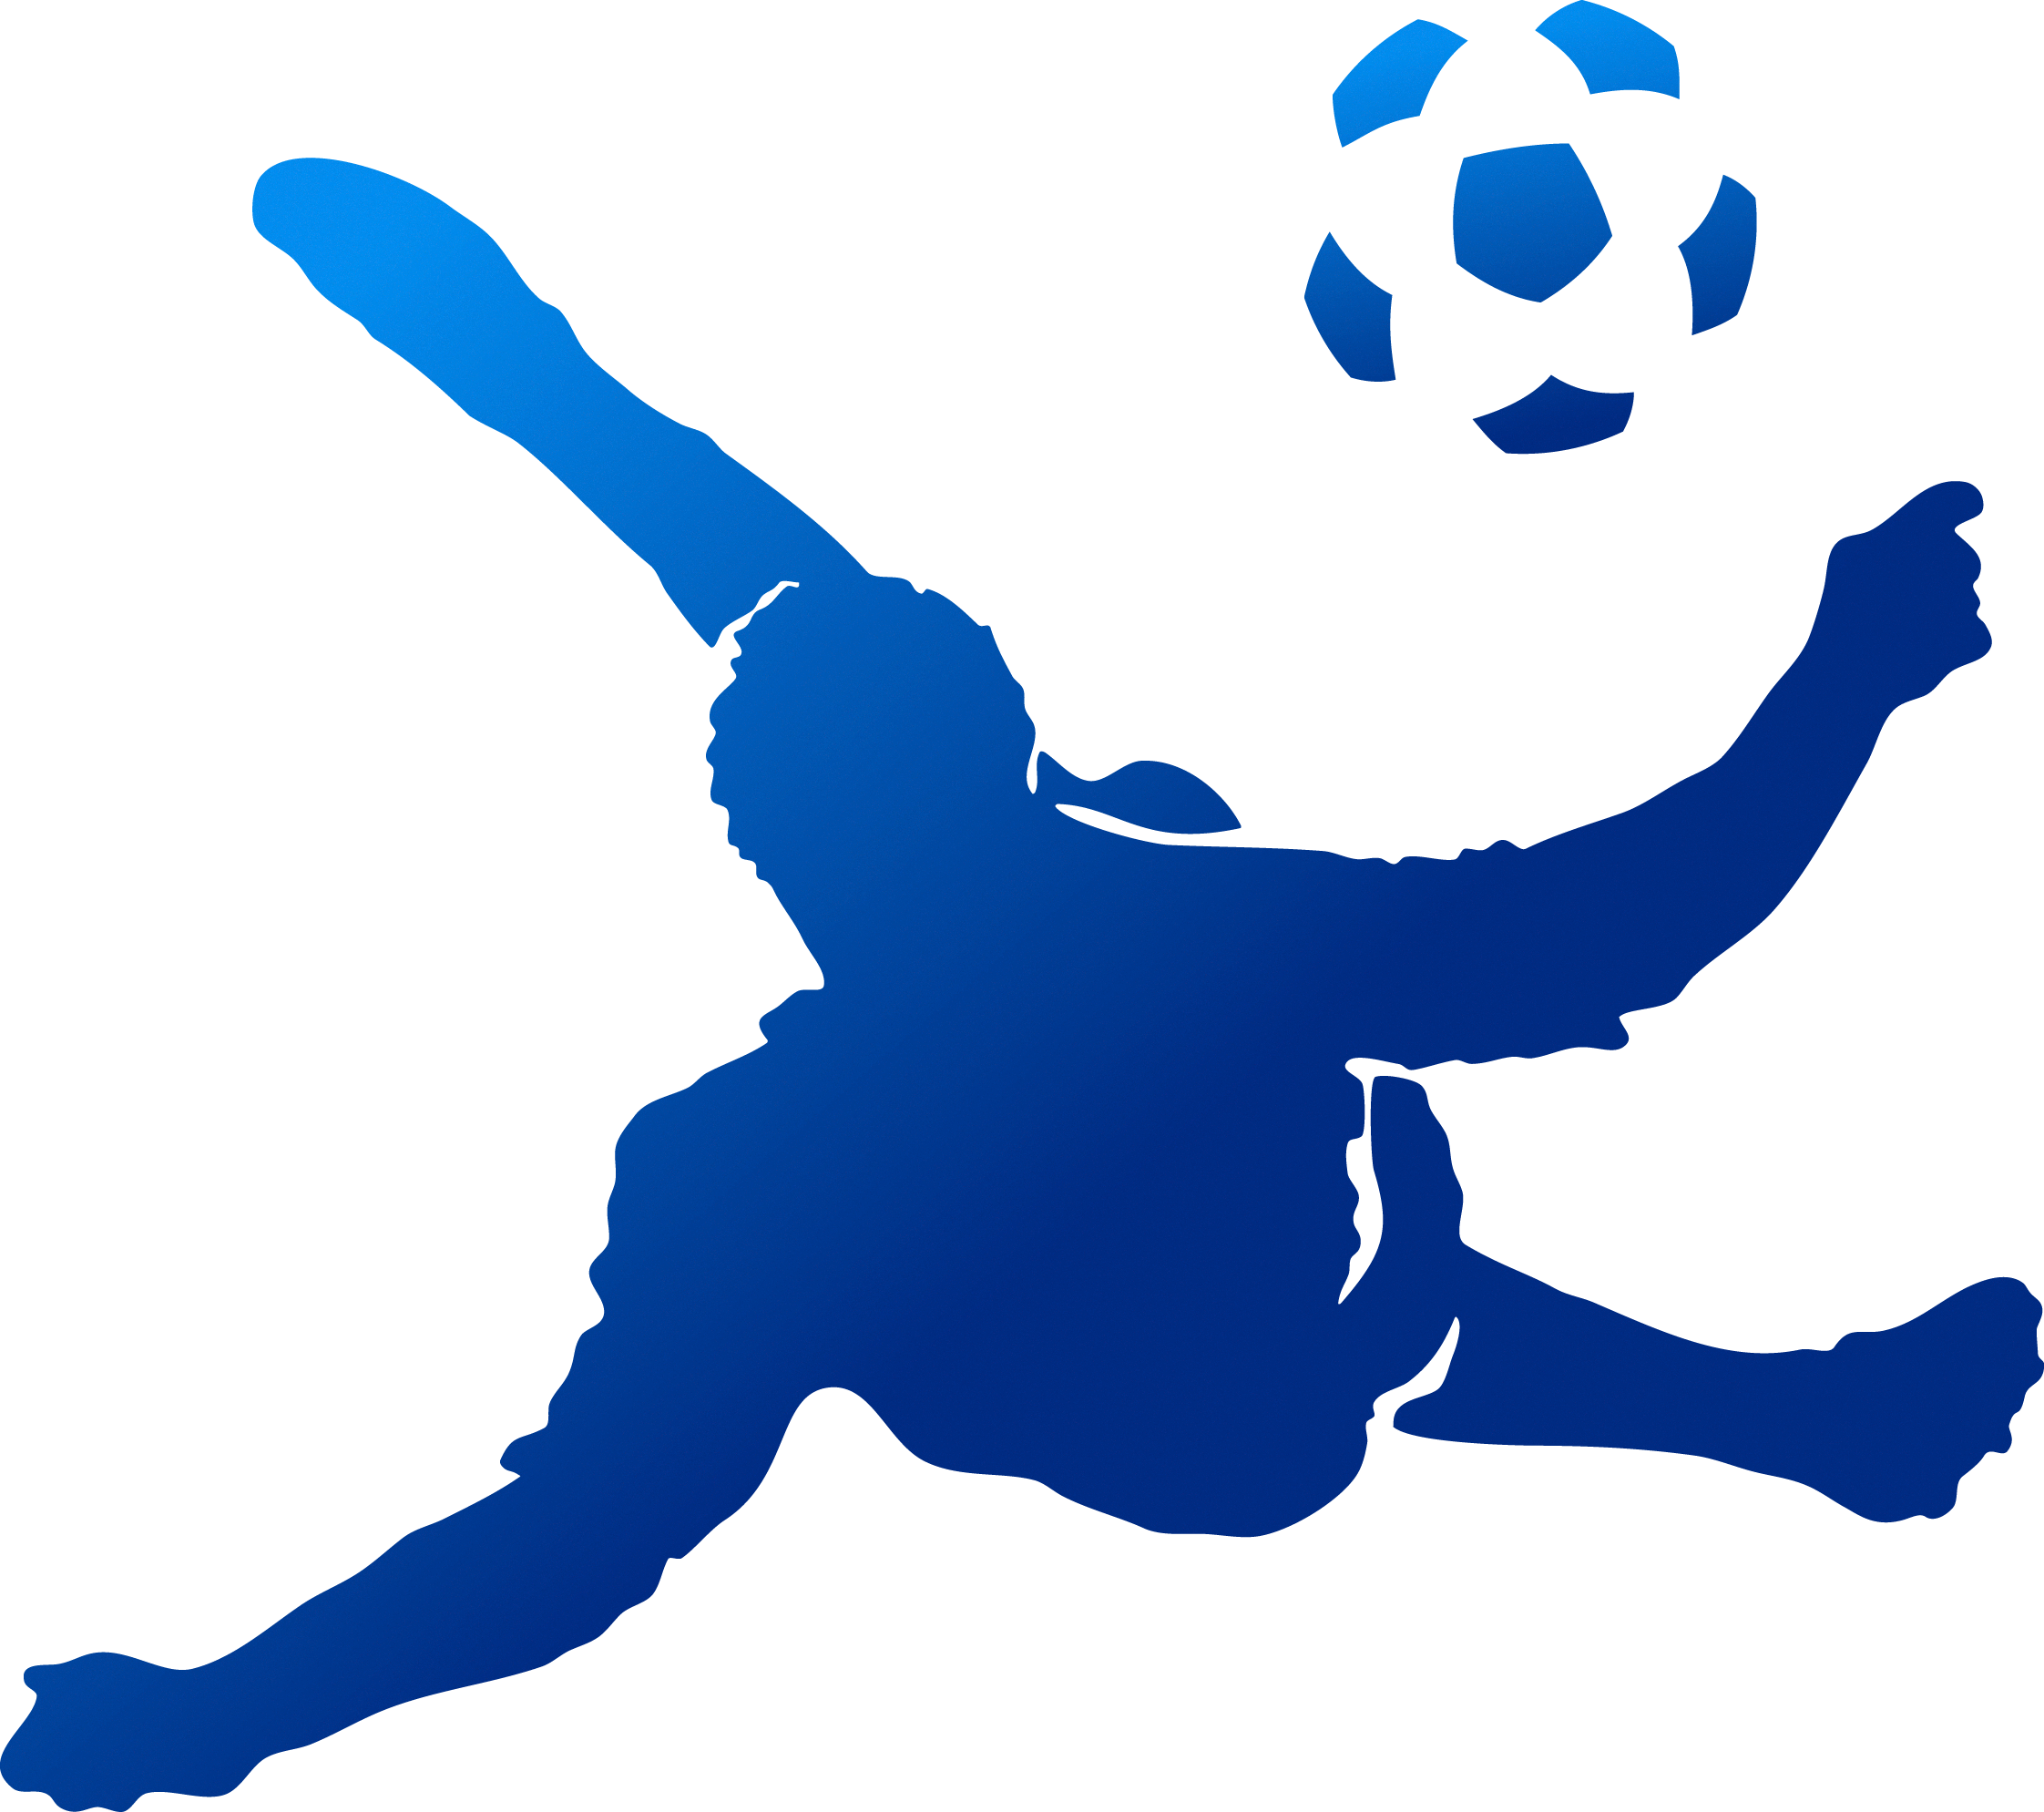 2014 michigan football player silhouette clipart image black and white 2014 FIFA World Cup 2018 FIFA World Cup Brazil Football Futsal ... image black and white